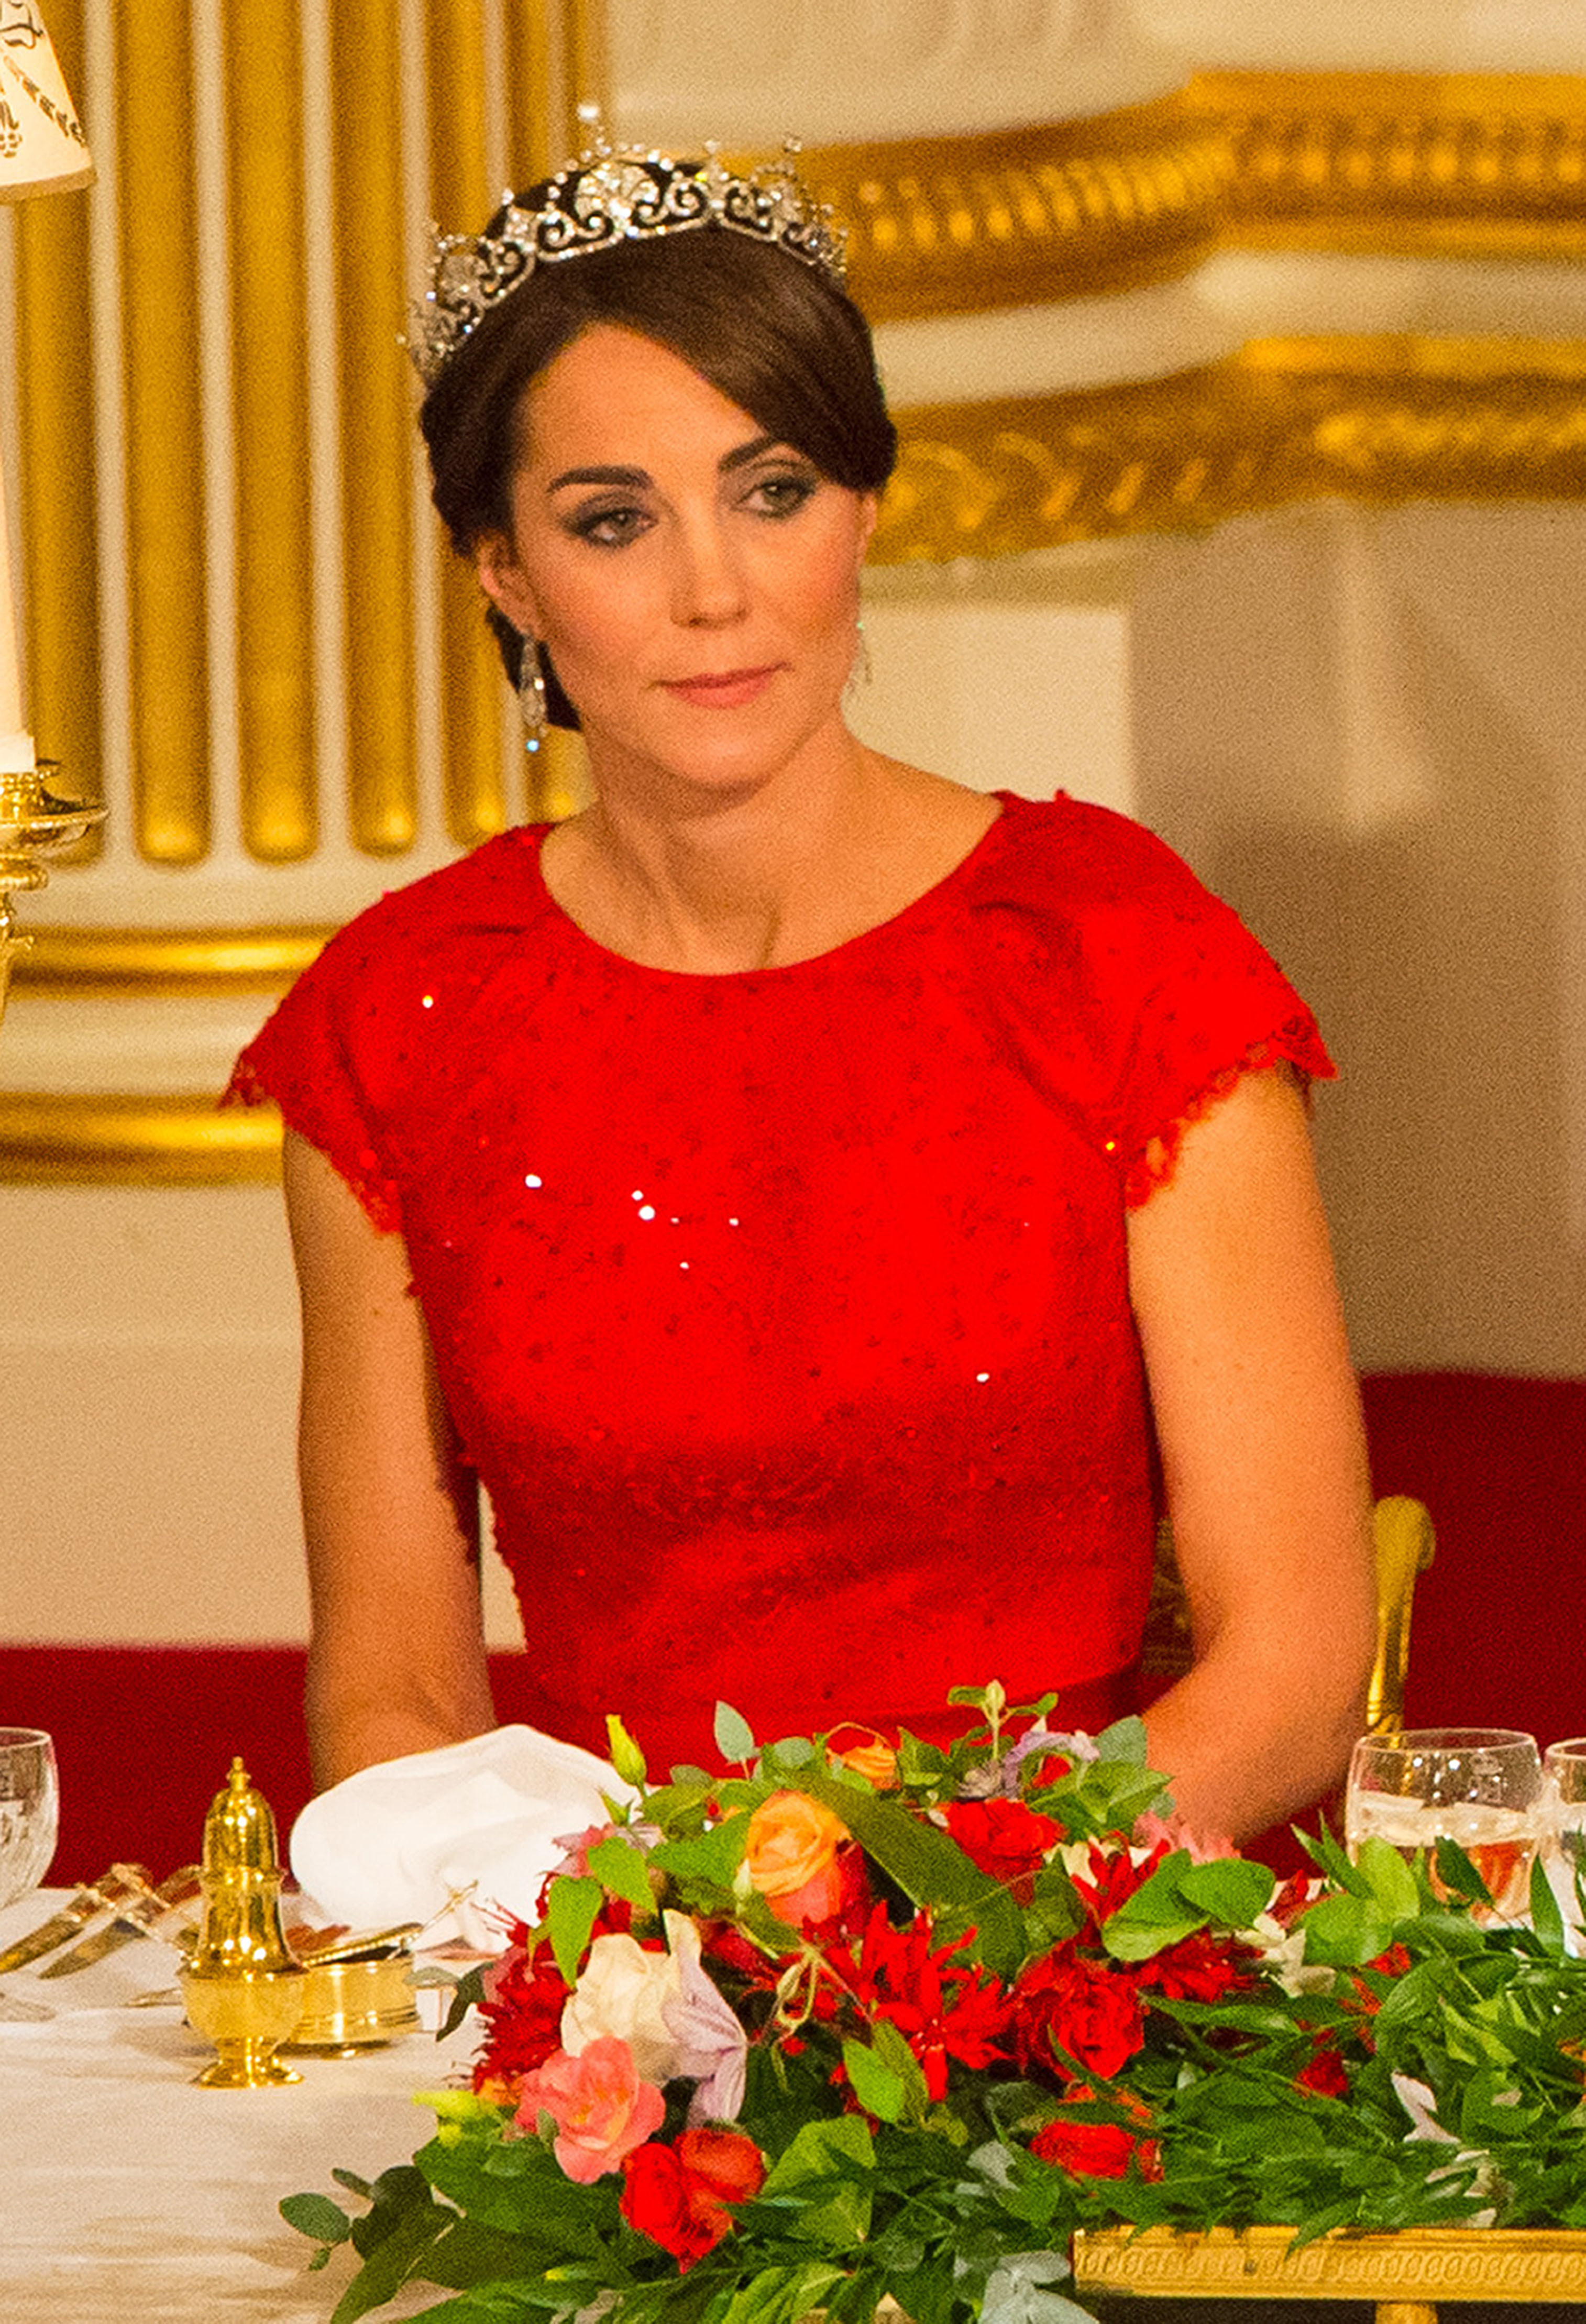 The Duchess of Cambridge as Queen Elizabeth II speaks at a state banquet at Buckingham Palace in London on Oct. 20, 2015.